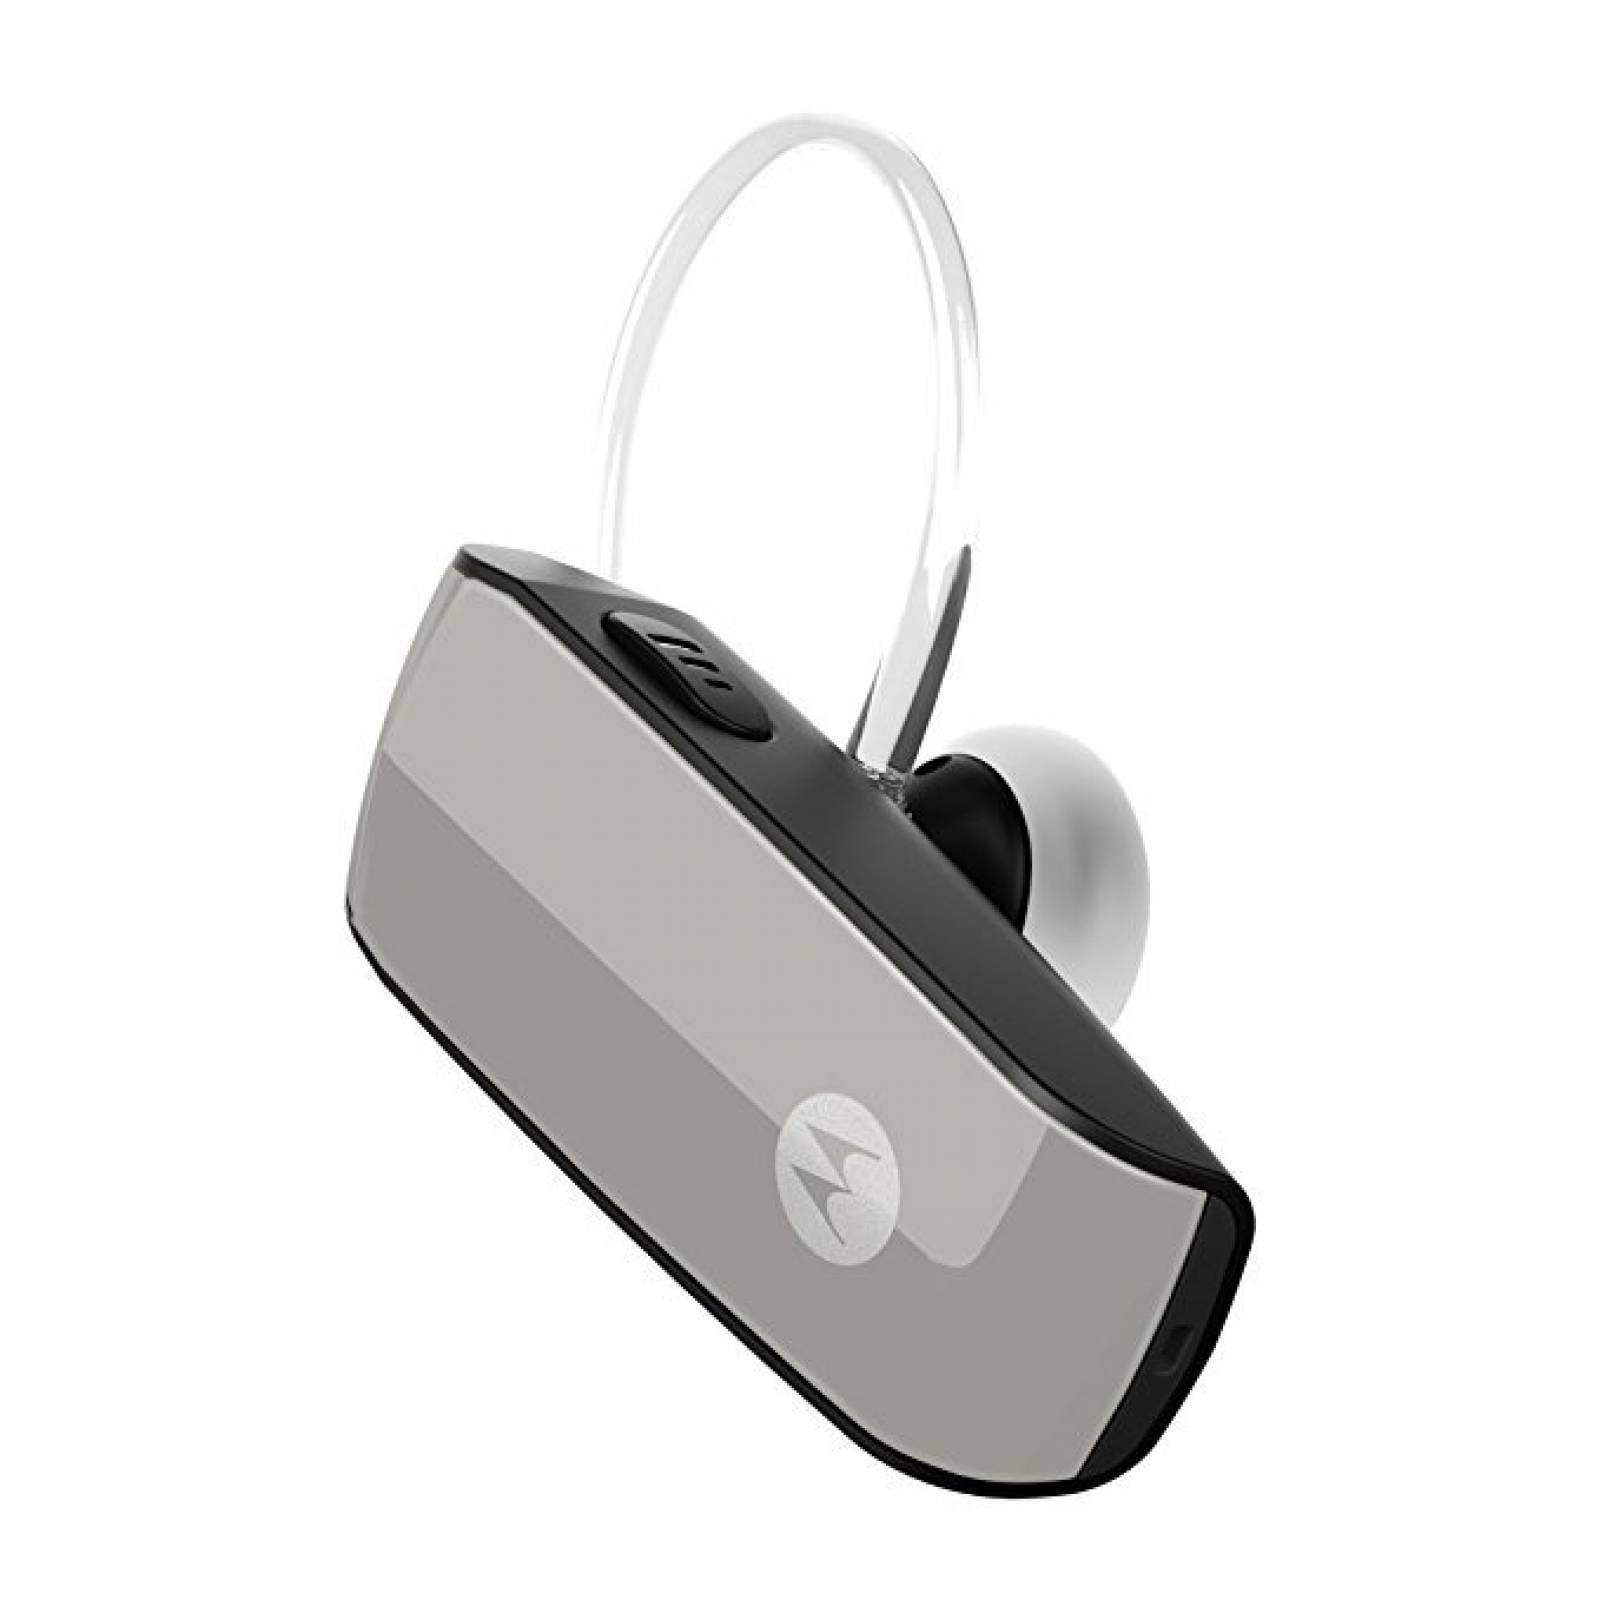 Manos Libres Bluetooth Amazon Manos Libres Bluetooth Motorola Hk275 Proteccion Ipx4